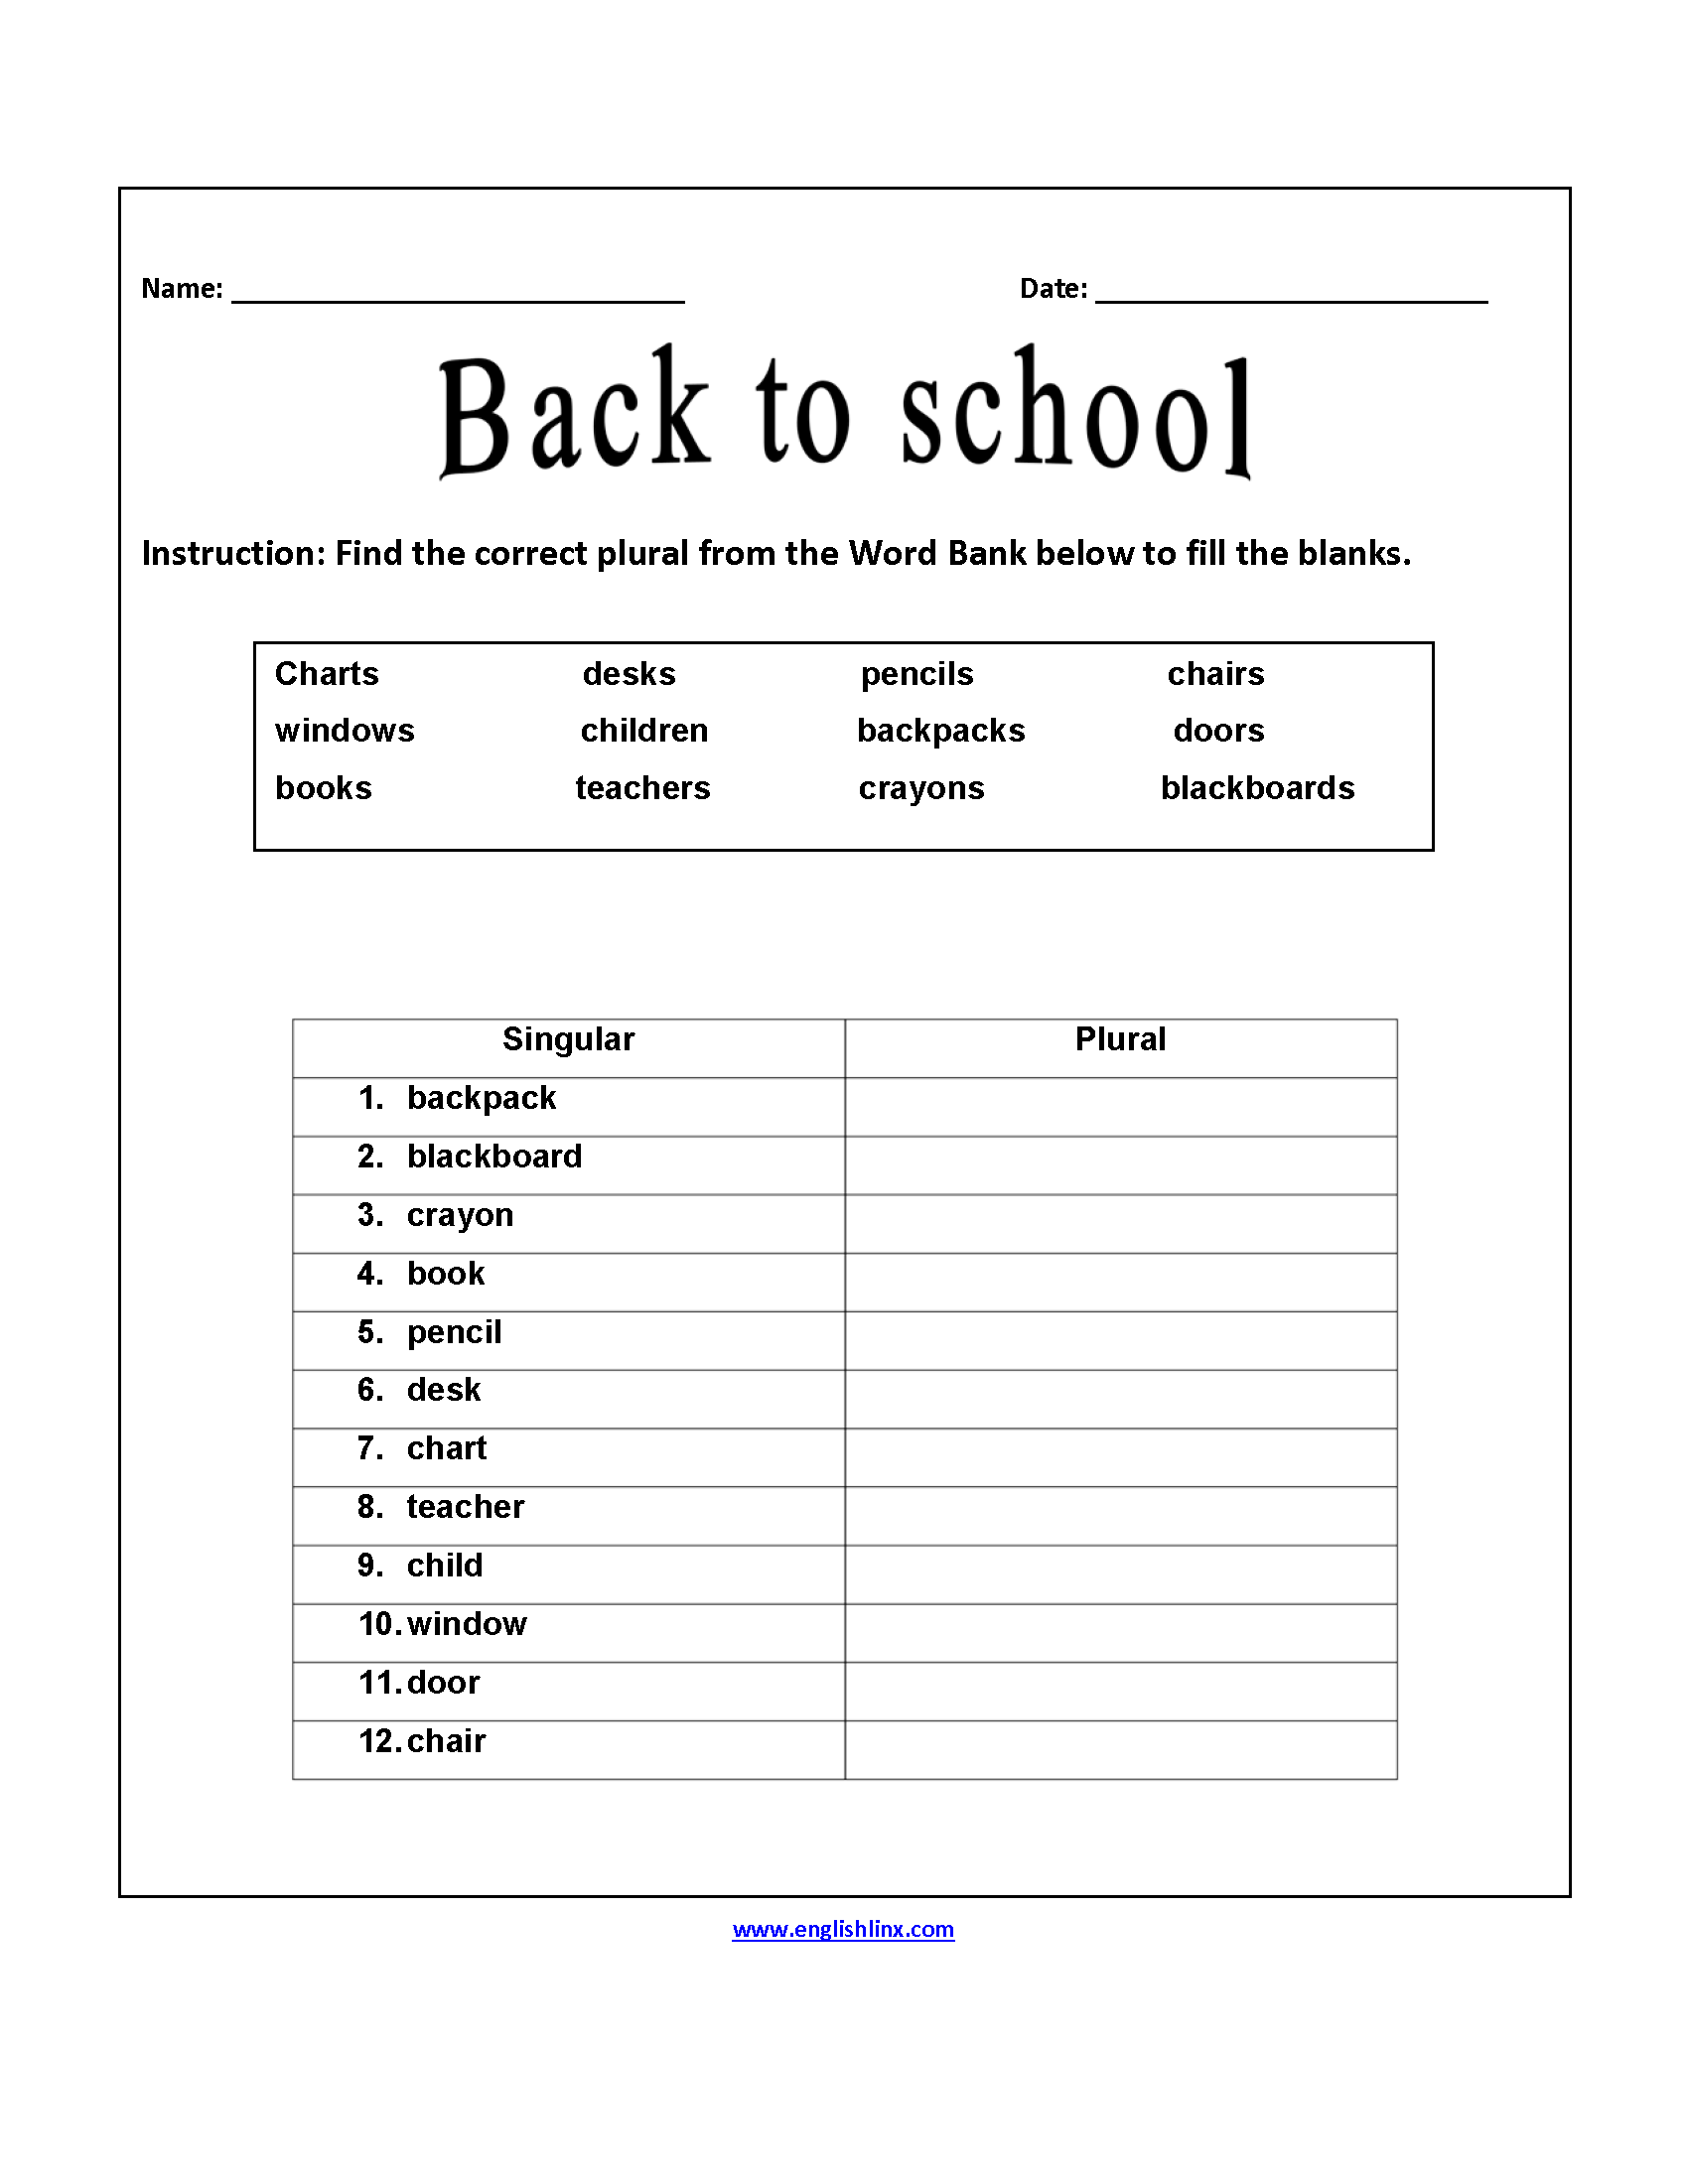 School Worksheets 5th Grade : Englishlinx back to school worksheets